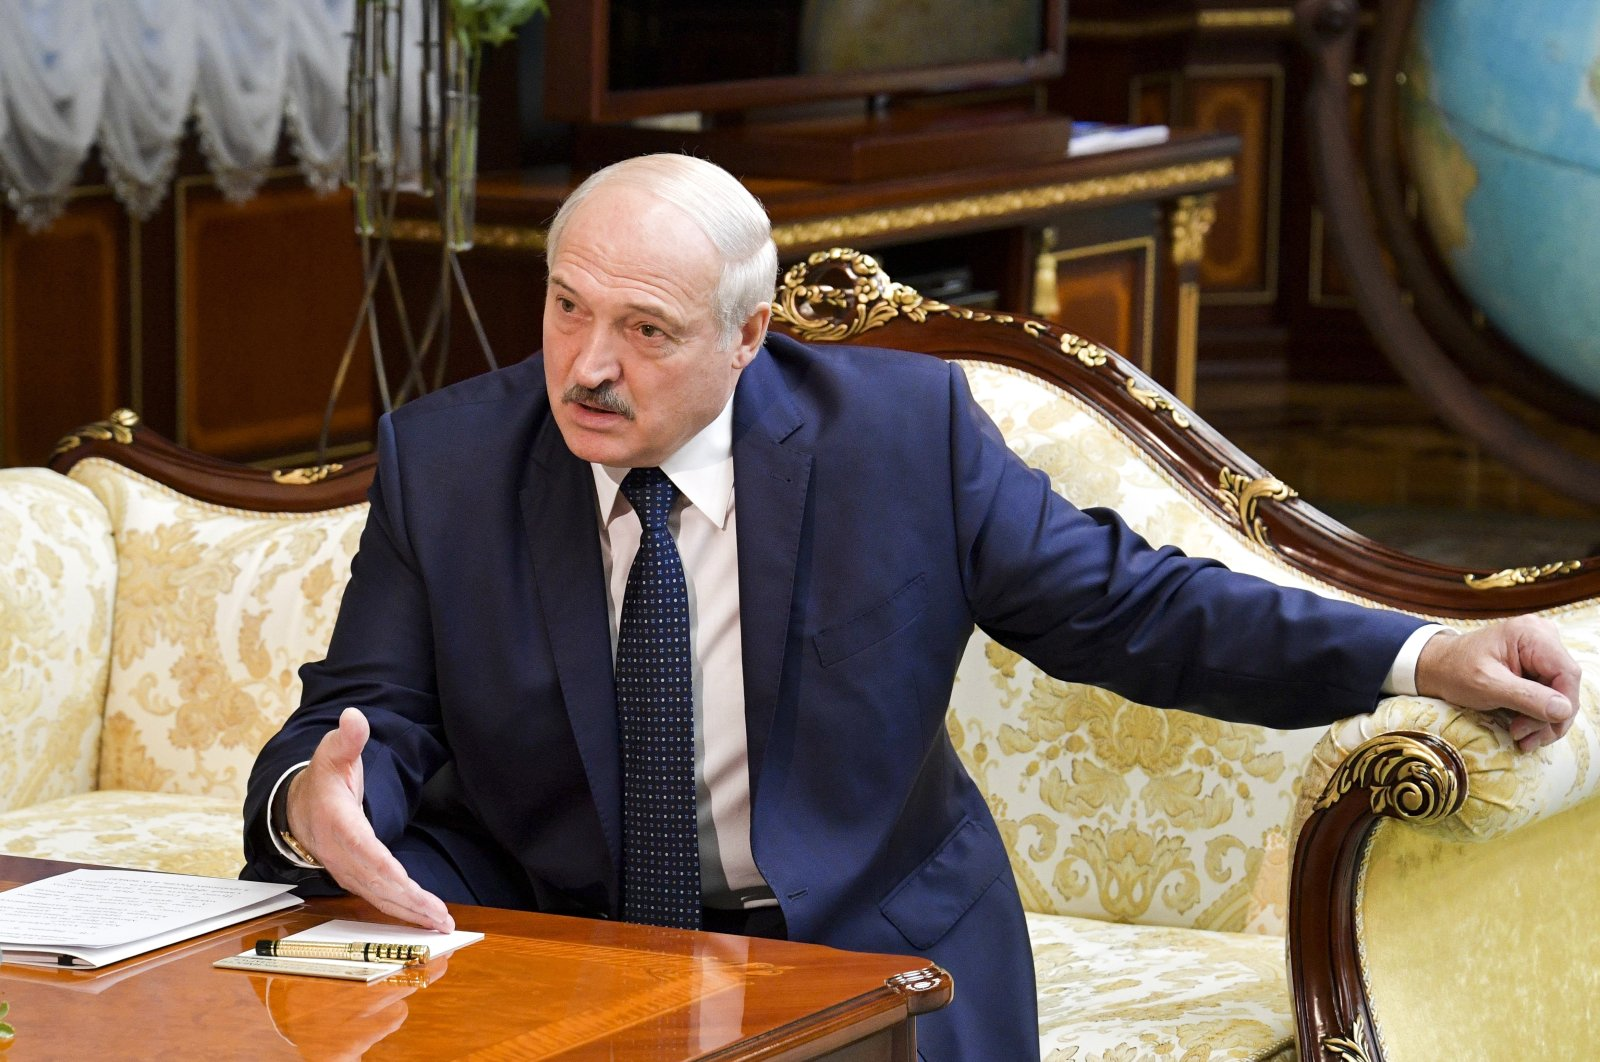 Belarusian President Alexander Lukashenko gestures while speaking to Russian Prime Minister Mikhail Mishustin during their talks in Minsk, Belarus, Sept. 3, 2020. (AP Photo)